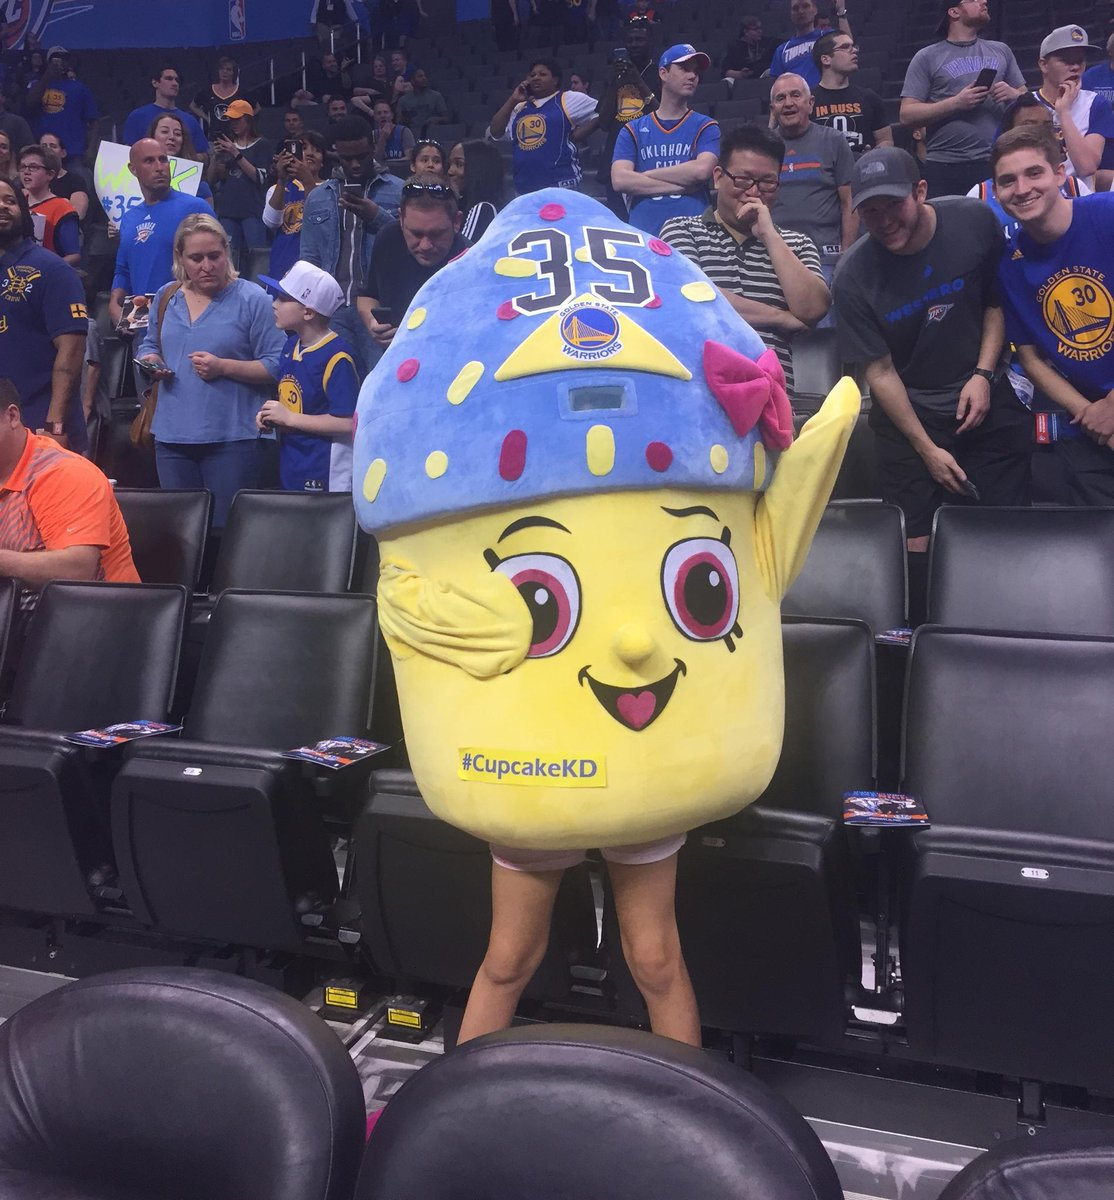 👀 Spotted in OKC.